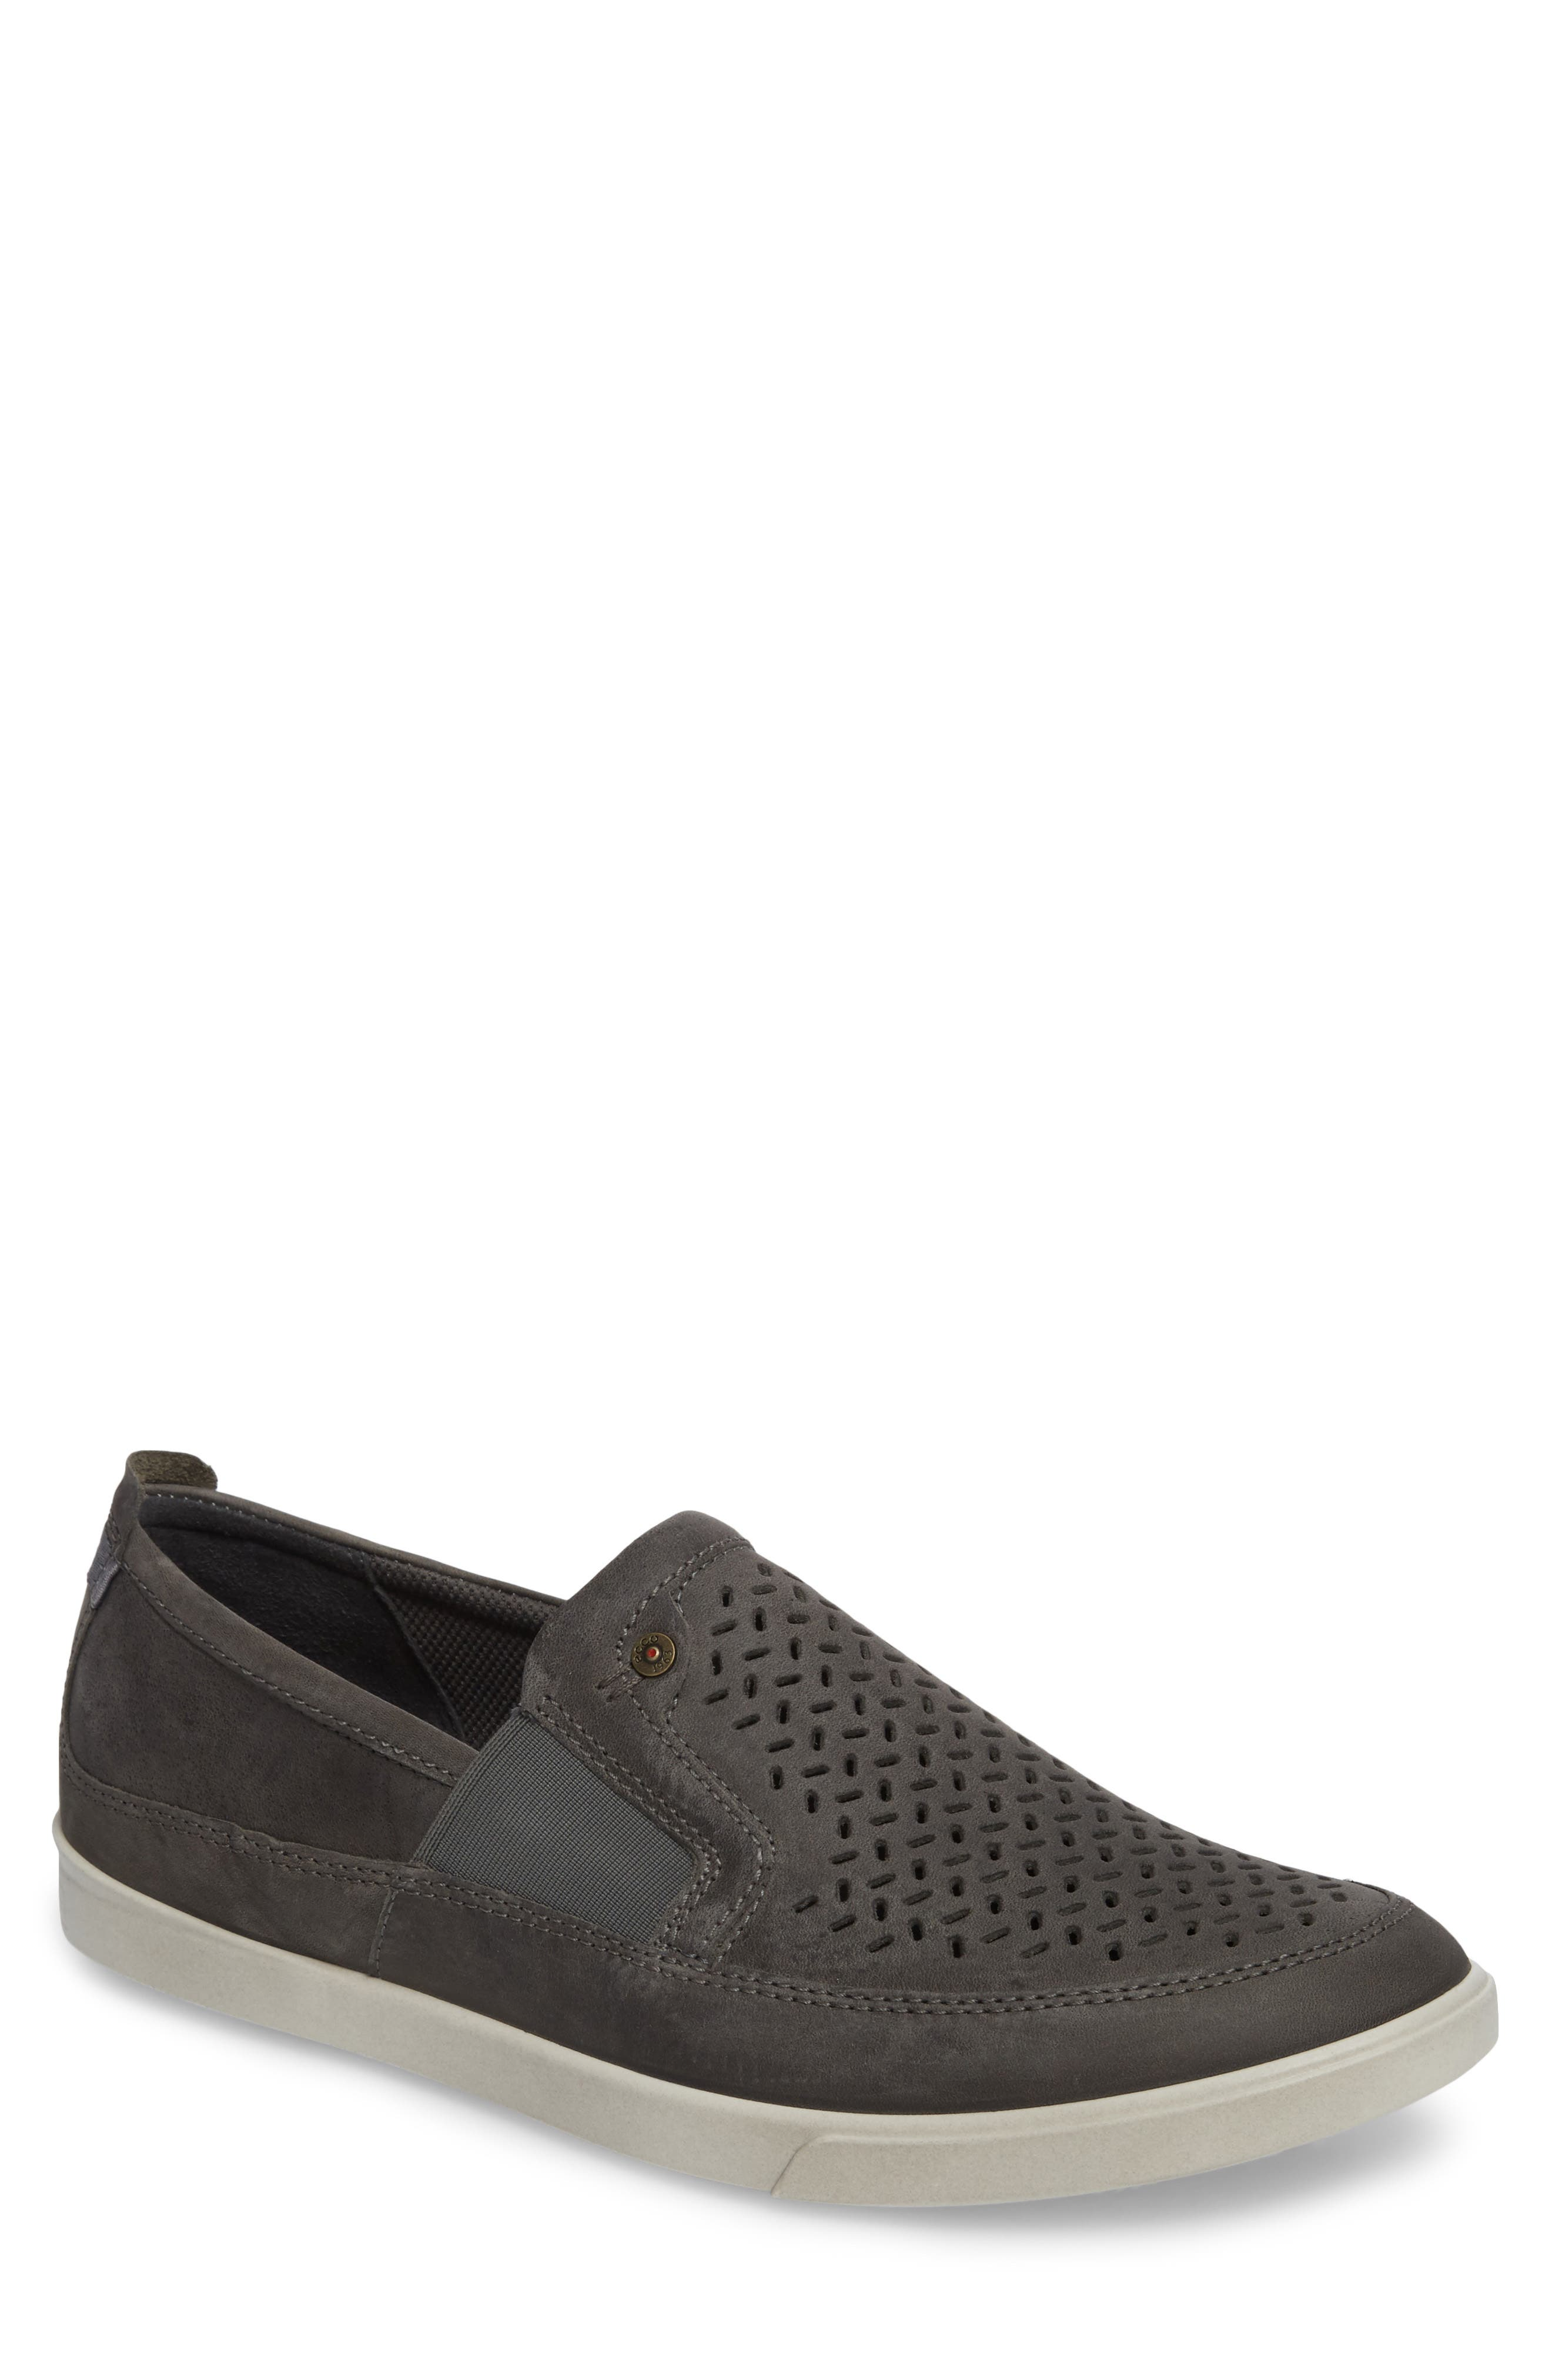 'Collin' Perforated Slip On Sneaker,                         Main,                         color, Titanium Leather